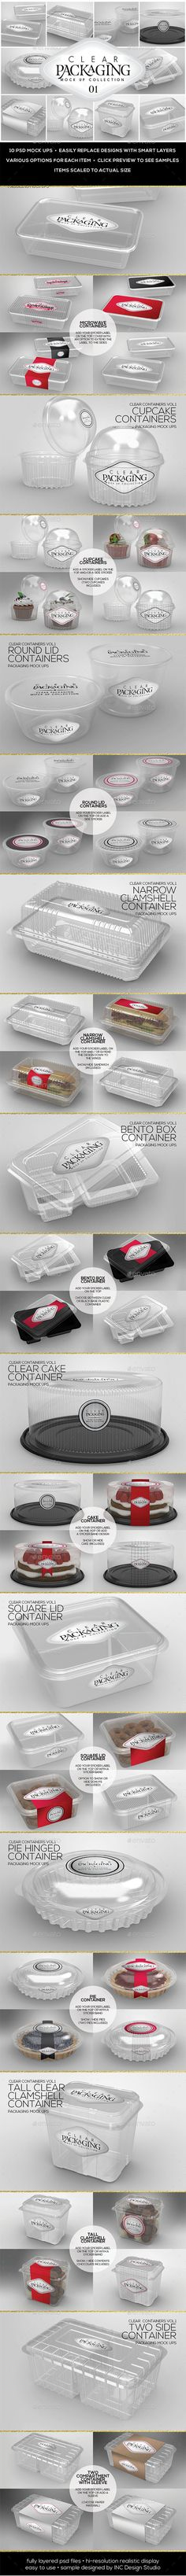 Clear Packaging MockUps 01 by incybautista Volume 1: Clear Plastic Food Containers Packaging Mock Up Collection10 Plastic Container Mock Ups in various shapes and sizes—per